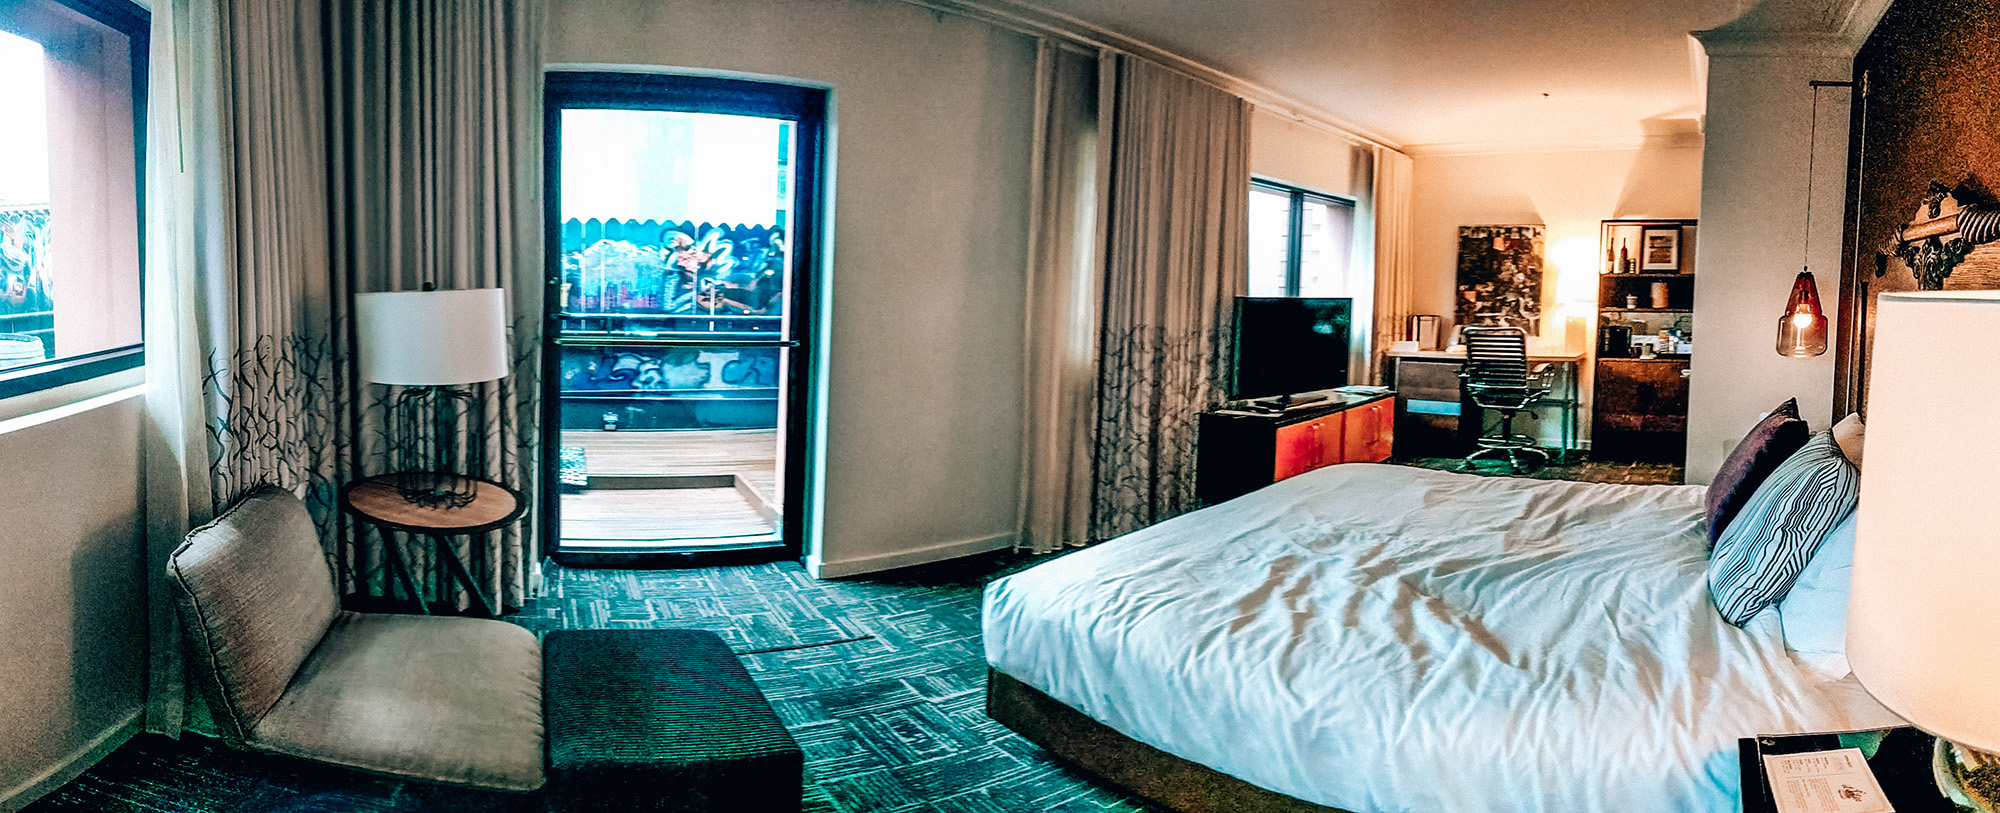 Hotel Vintage room pano